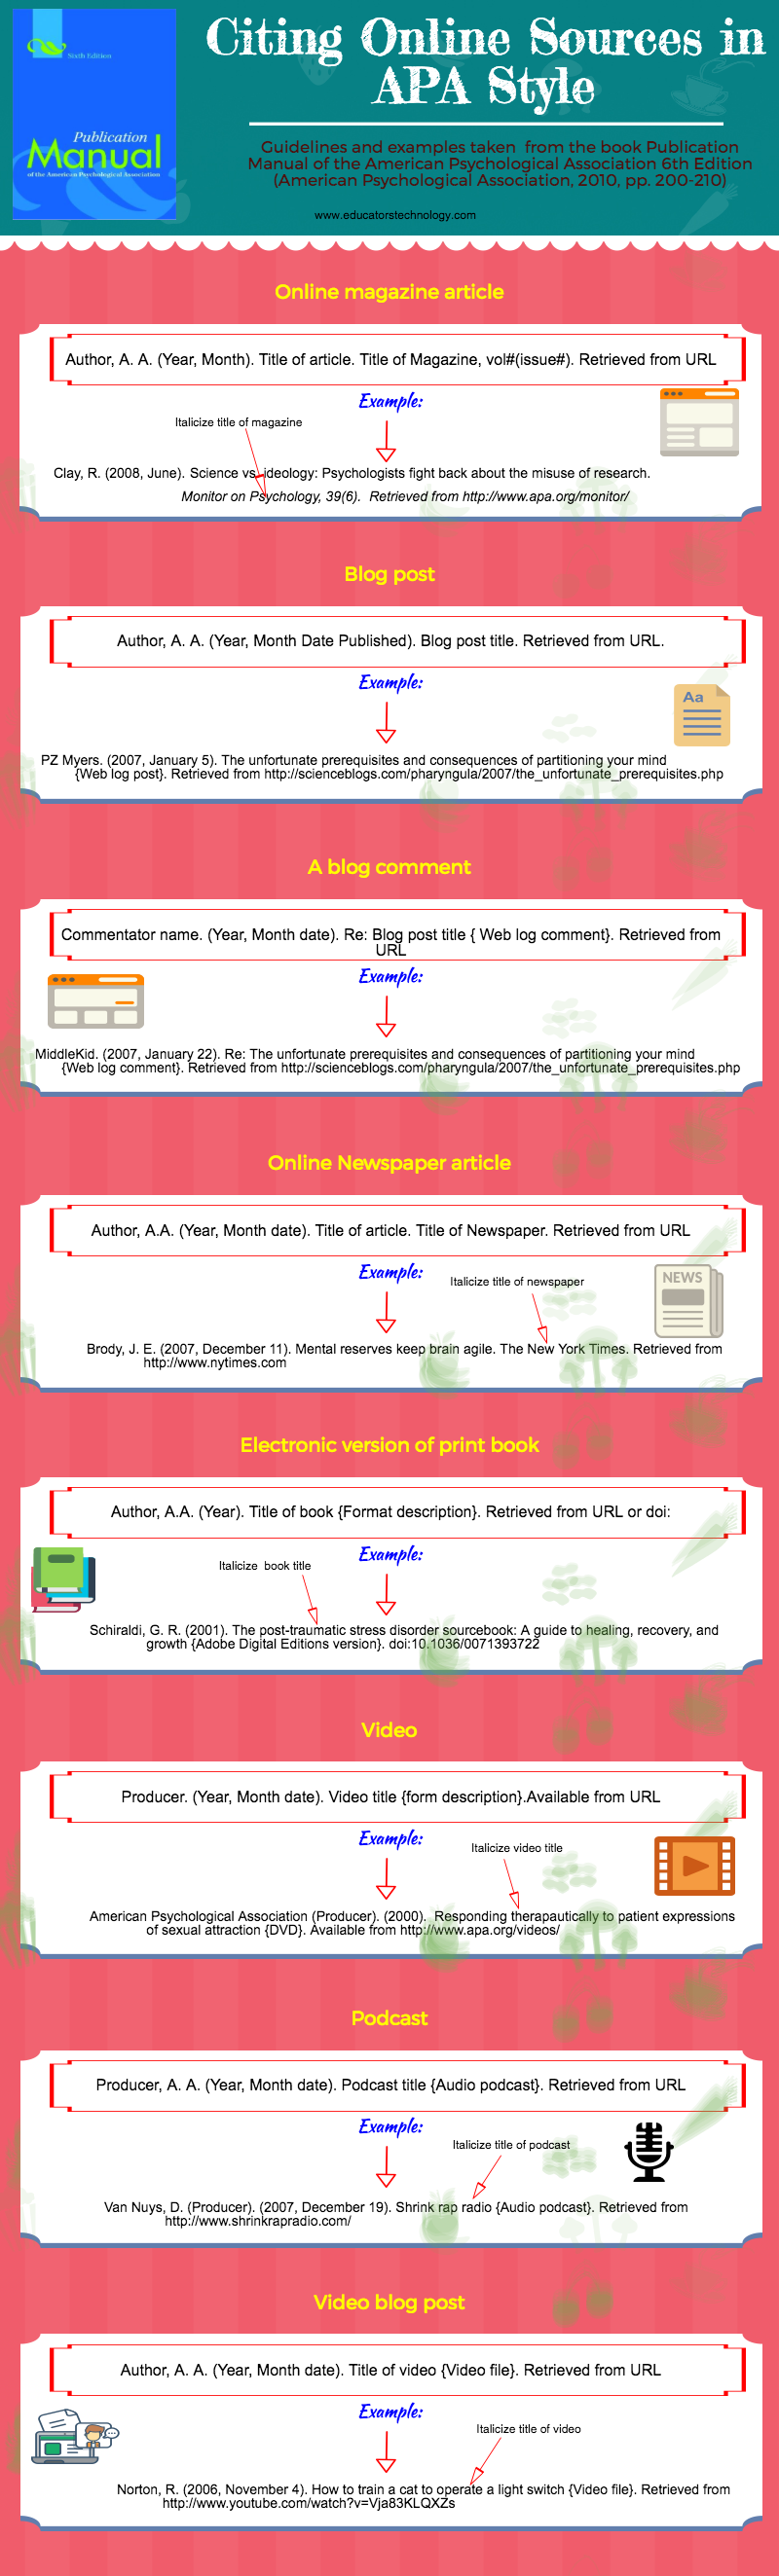 An Interesting Visual On How To Cite Online Source In Apa Style Student Guide Best Essay Writing Service College Article